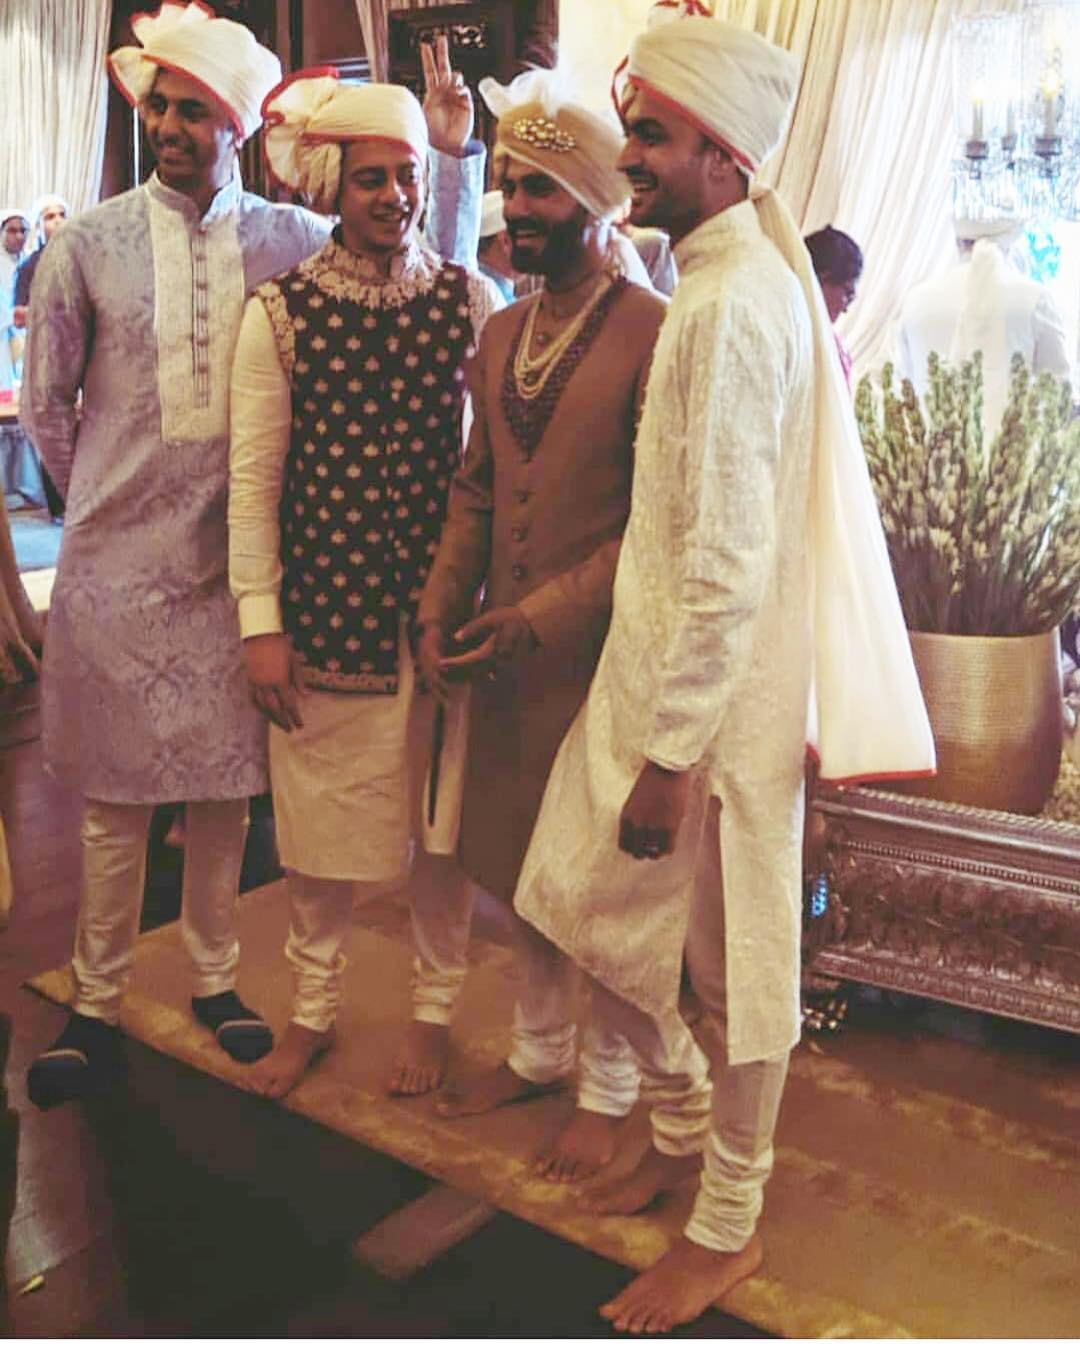 10-3 Sonam Kapoor Wedding Pics - Engagement and Complete Wedding Pictures